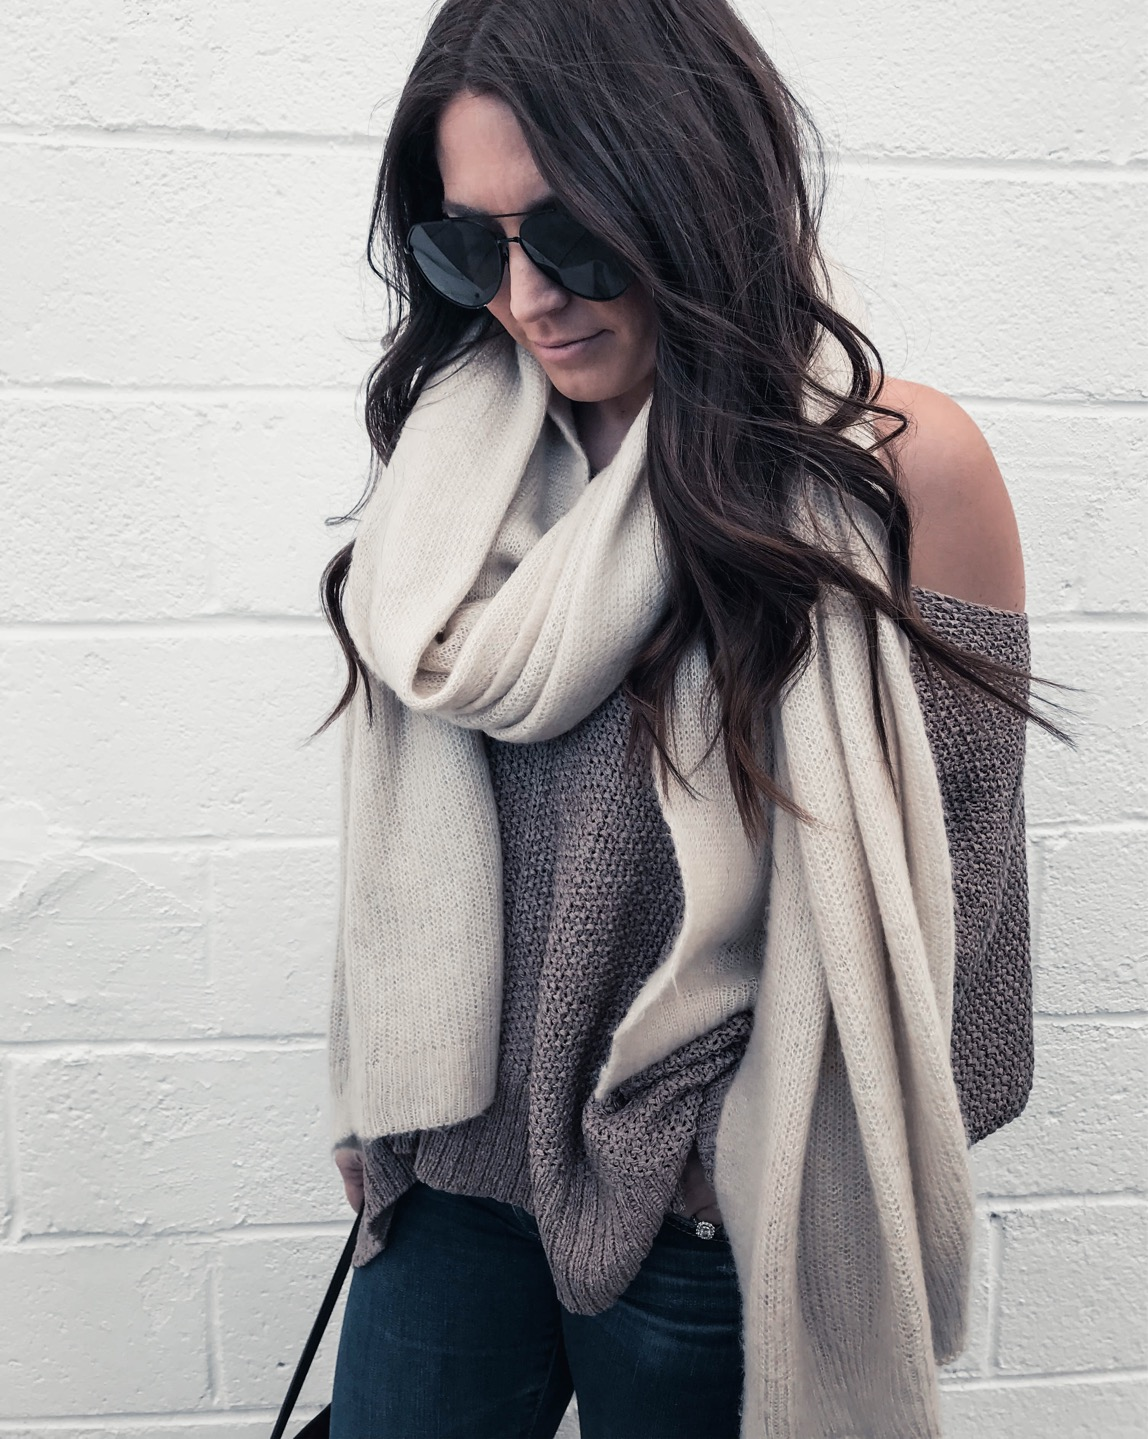 Instagram Round Up | Pine Barren Beauty | spring transition outfit idea, free people scarf, off the shoulder sweater